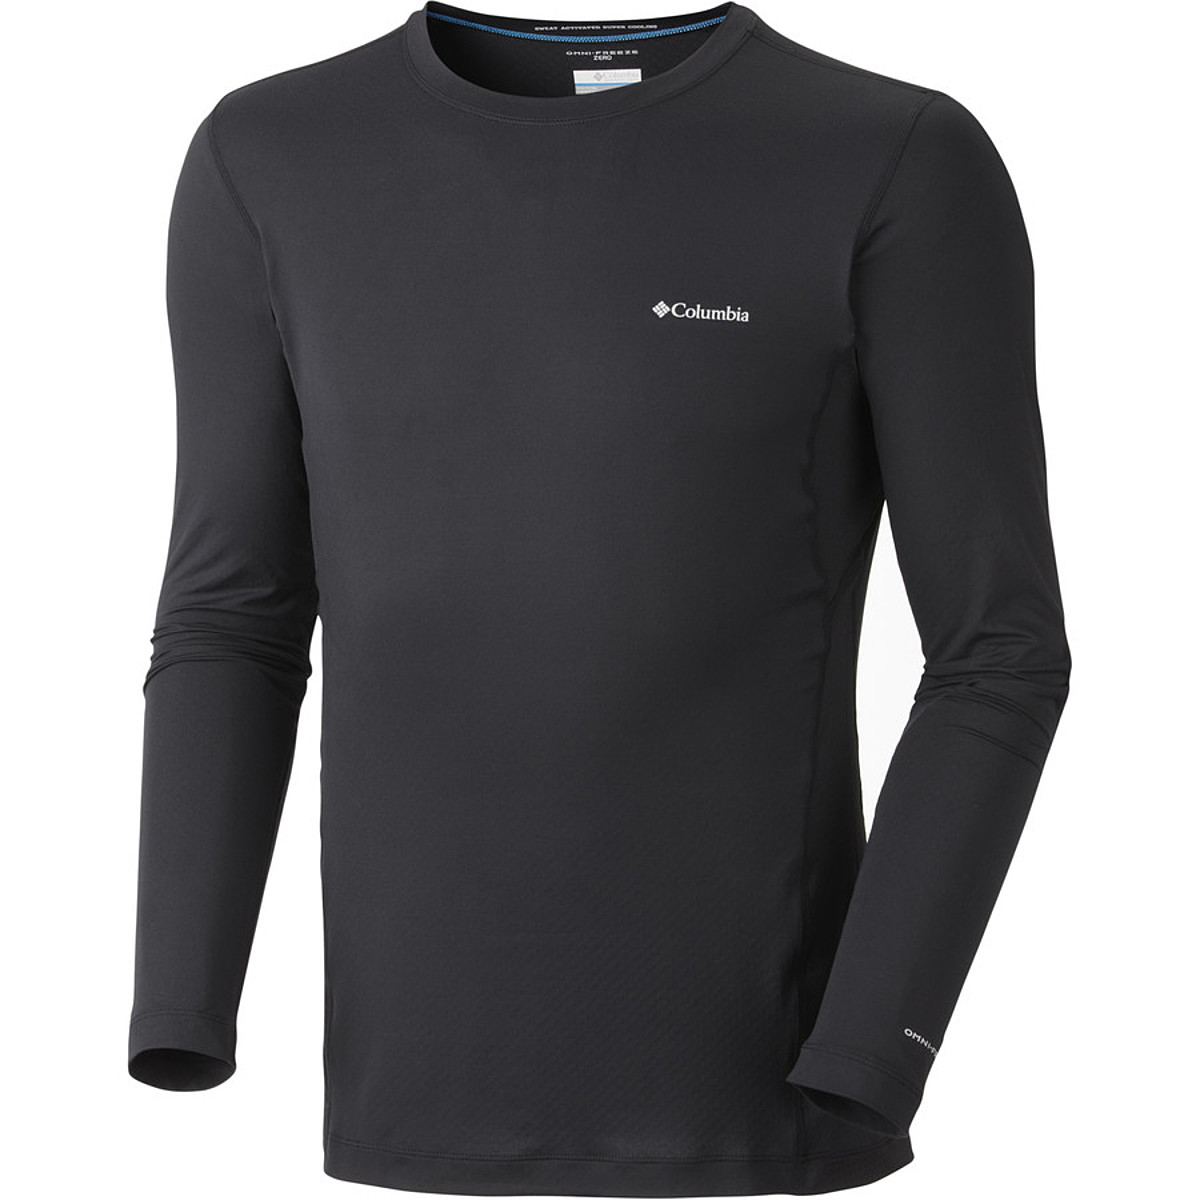 photo: Columbia Men's Coolest Cool Long Sleeve Top base layer top